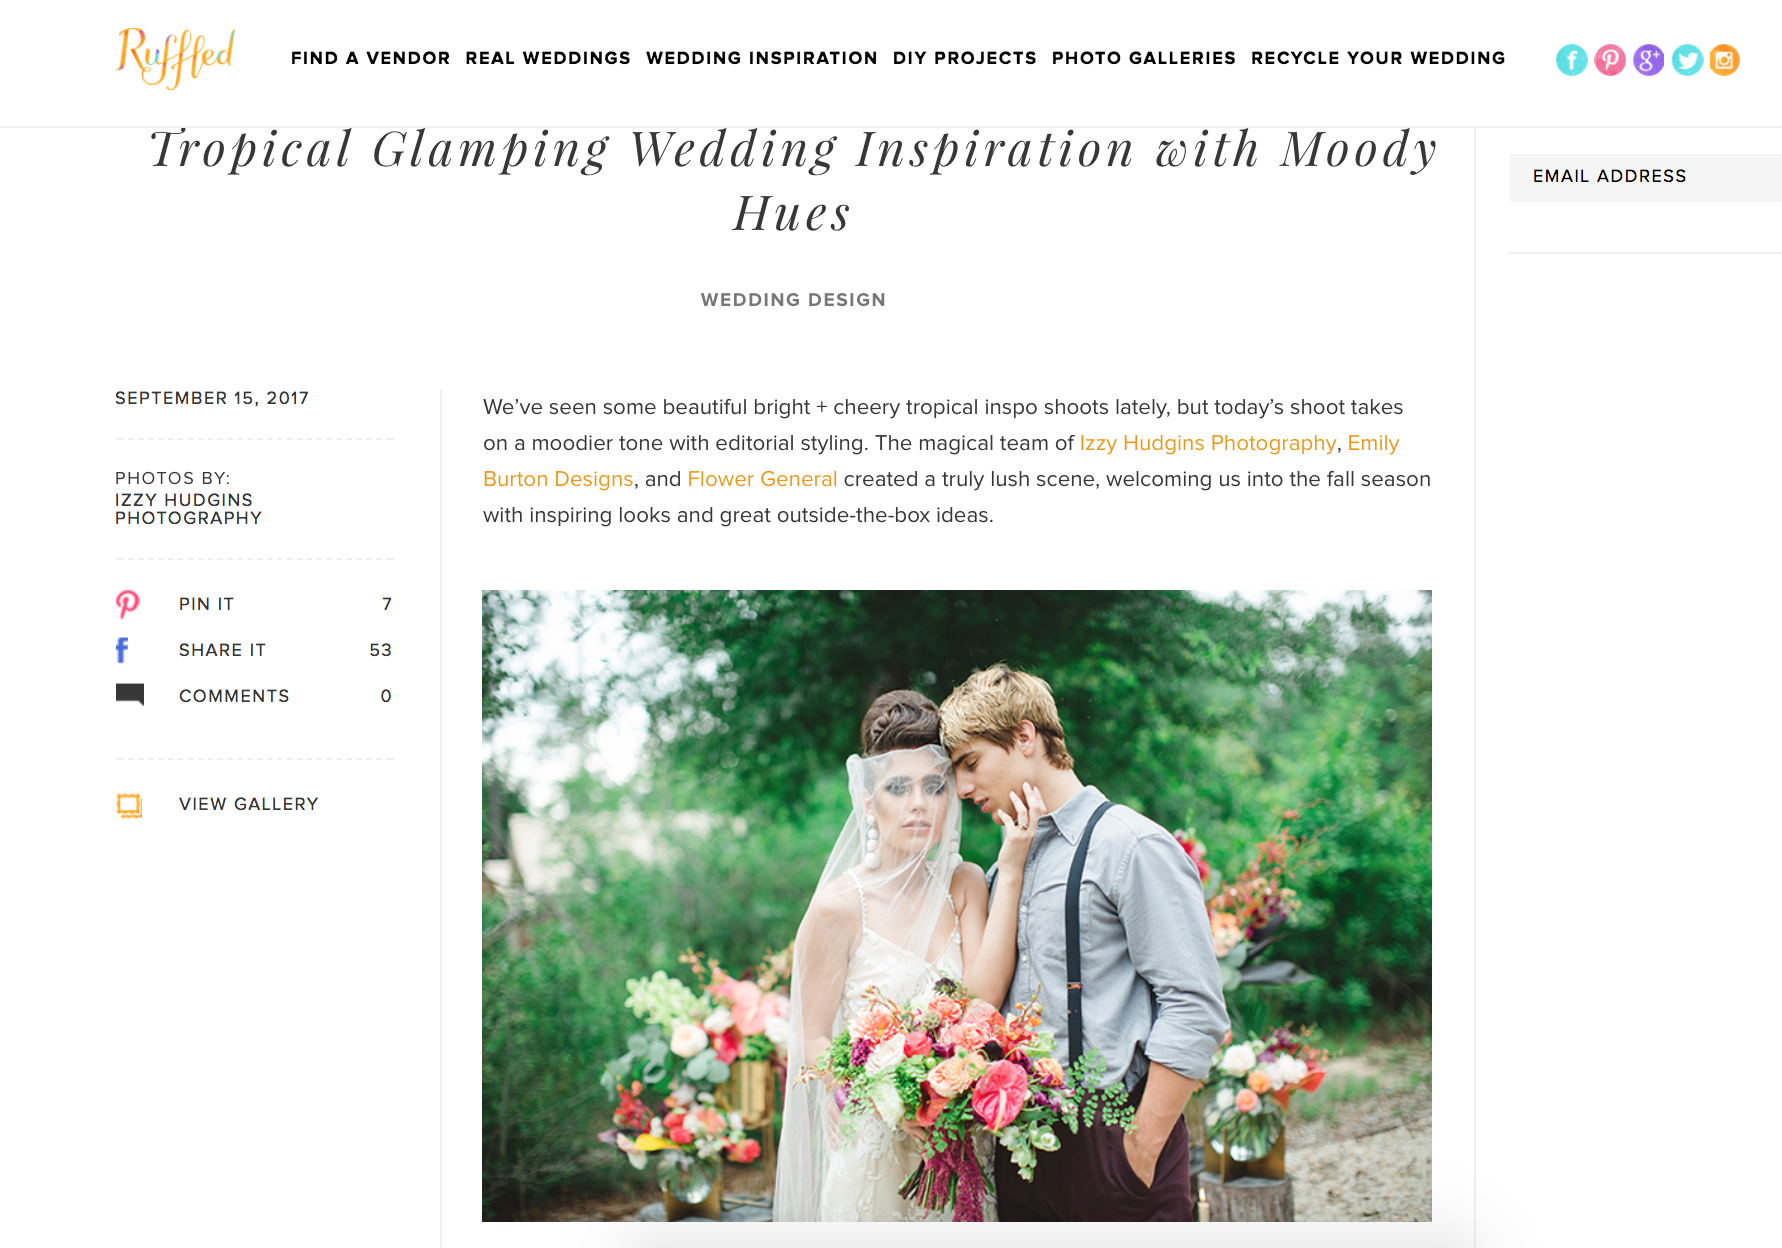 This shoot was featured on Ruffled! Check it out here .